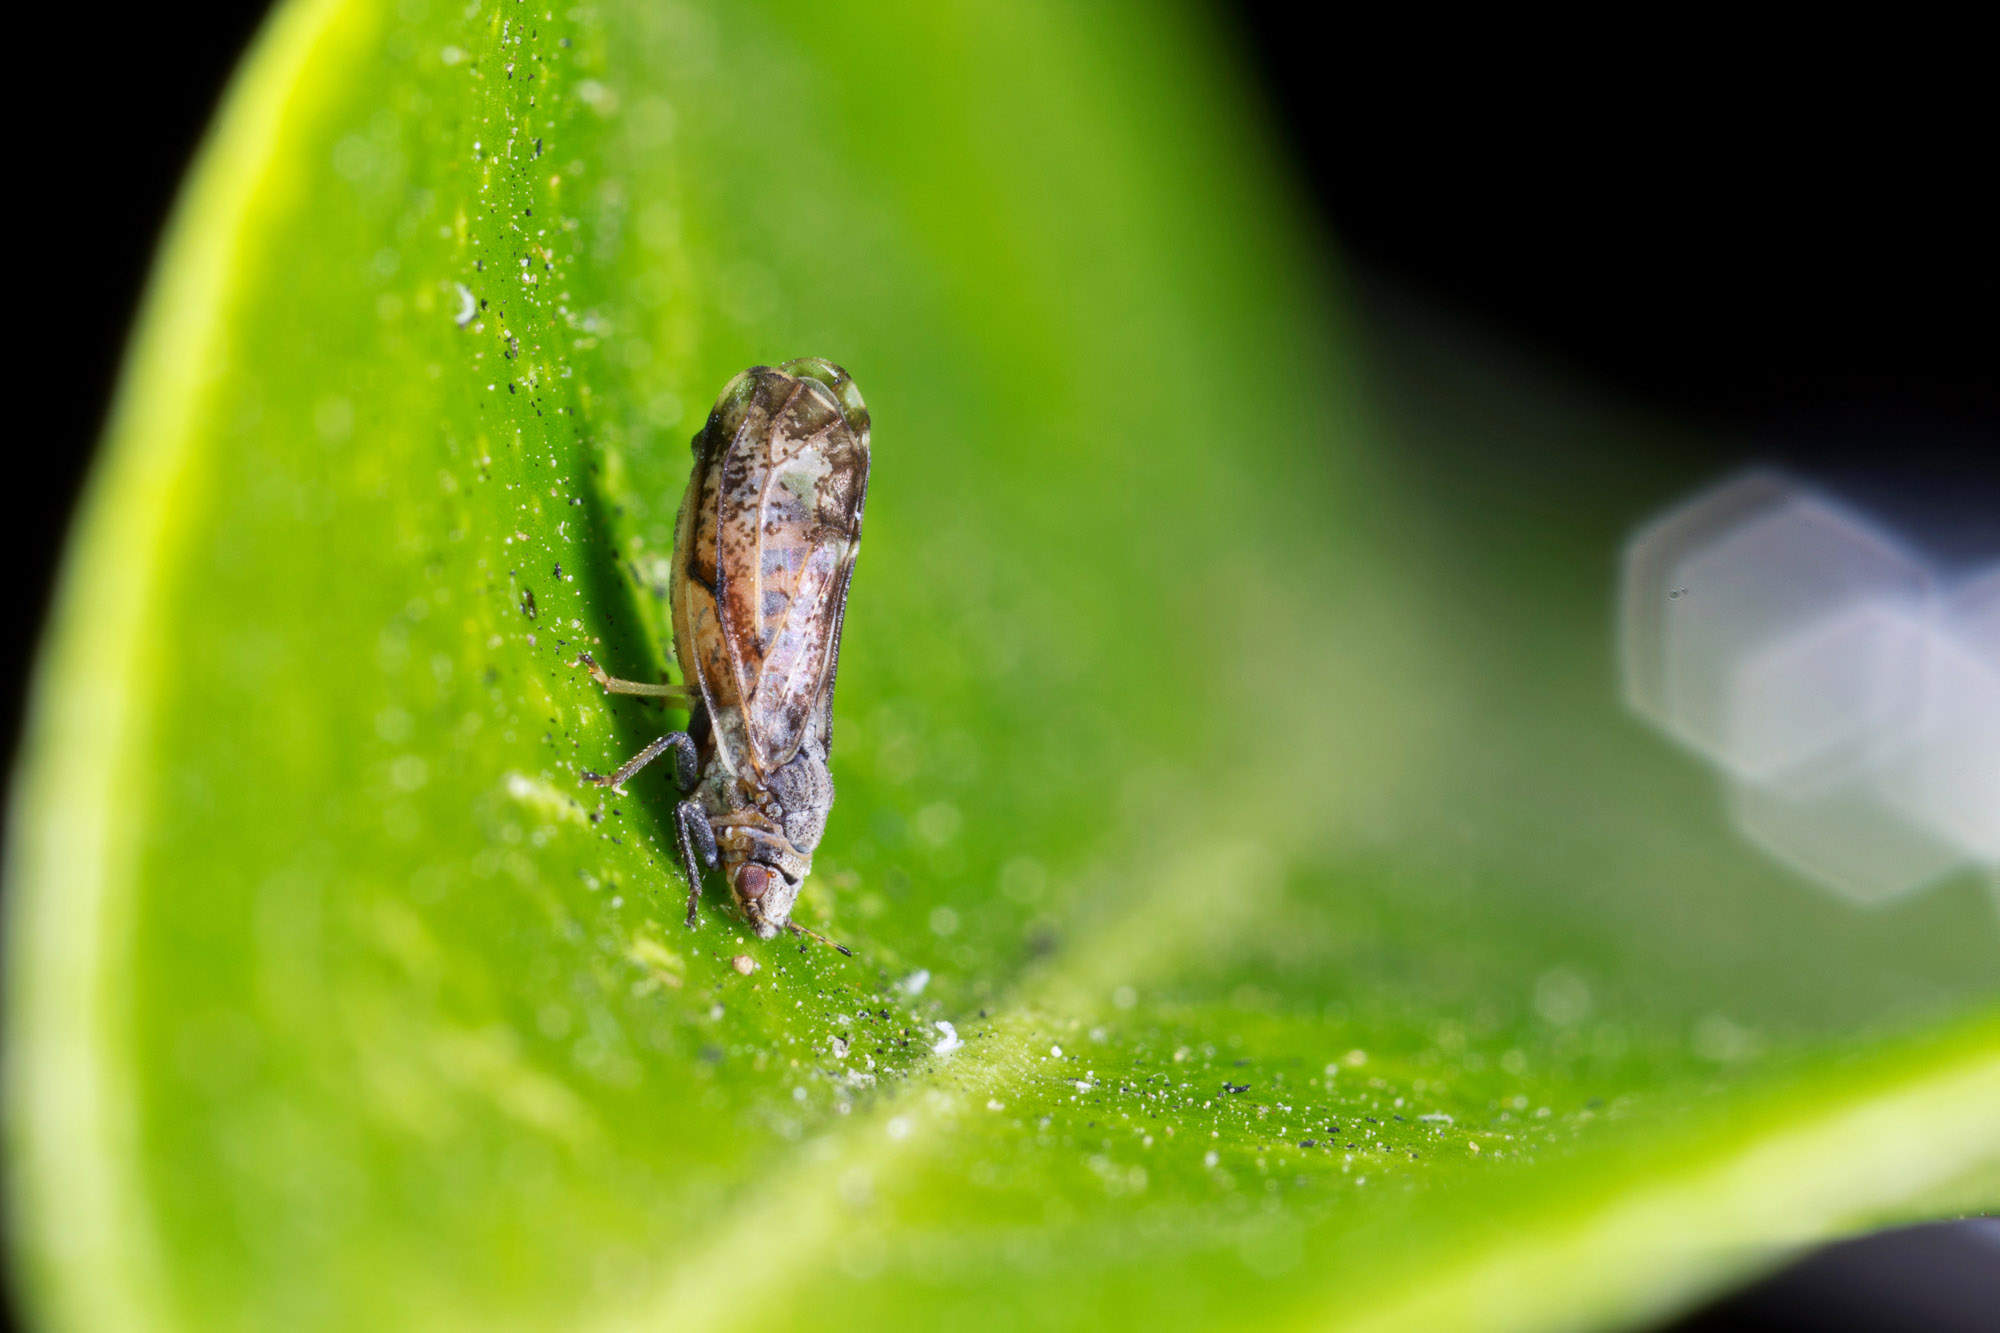 The Asian citrus psyllid is spreading a bacteria that is attacking orange groves, putting the U.S.'s $3 billion citrus industry in jeopardy. (Photo courtesy Mike Lewis/Google Images)